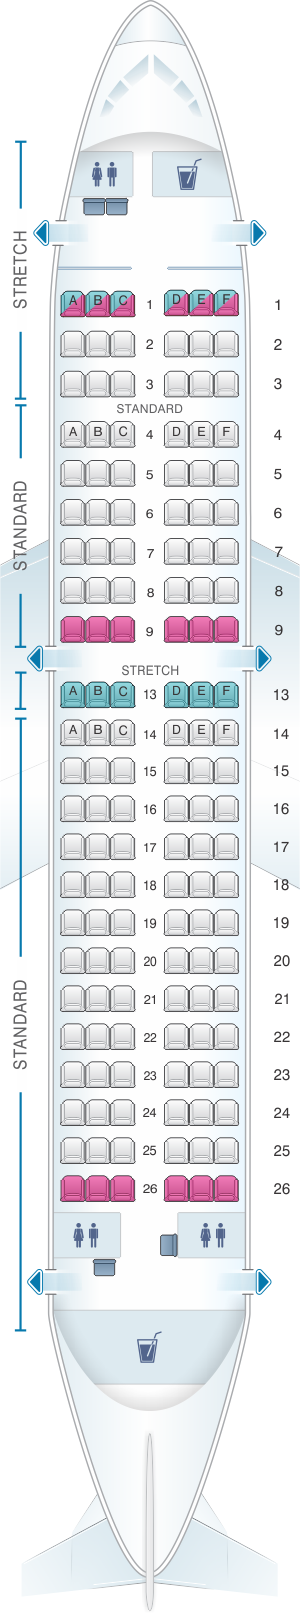 Seat map for Frontier Airlines Airbus A319 138pax